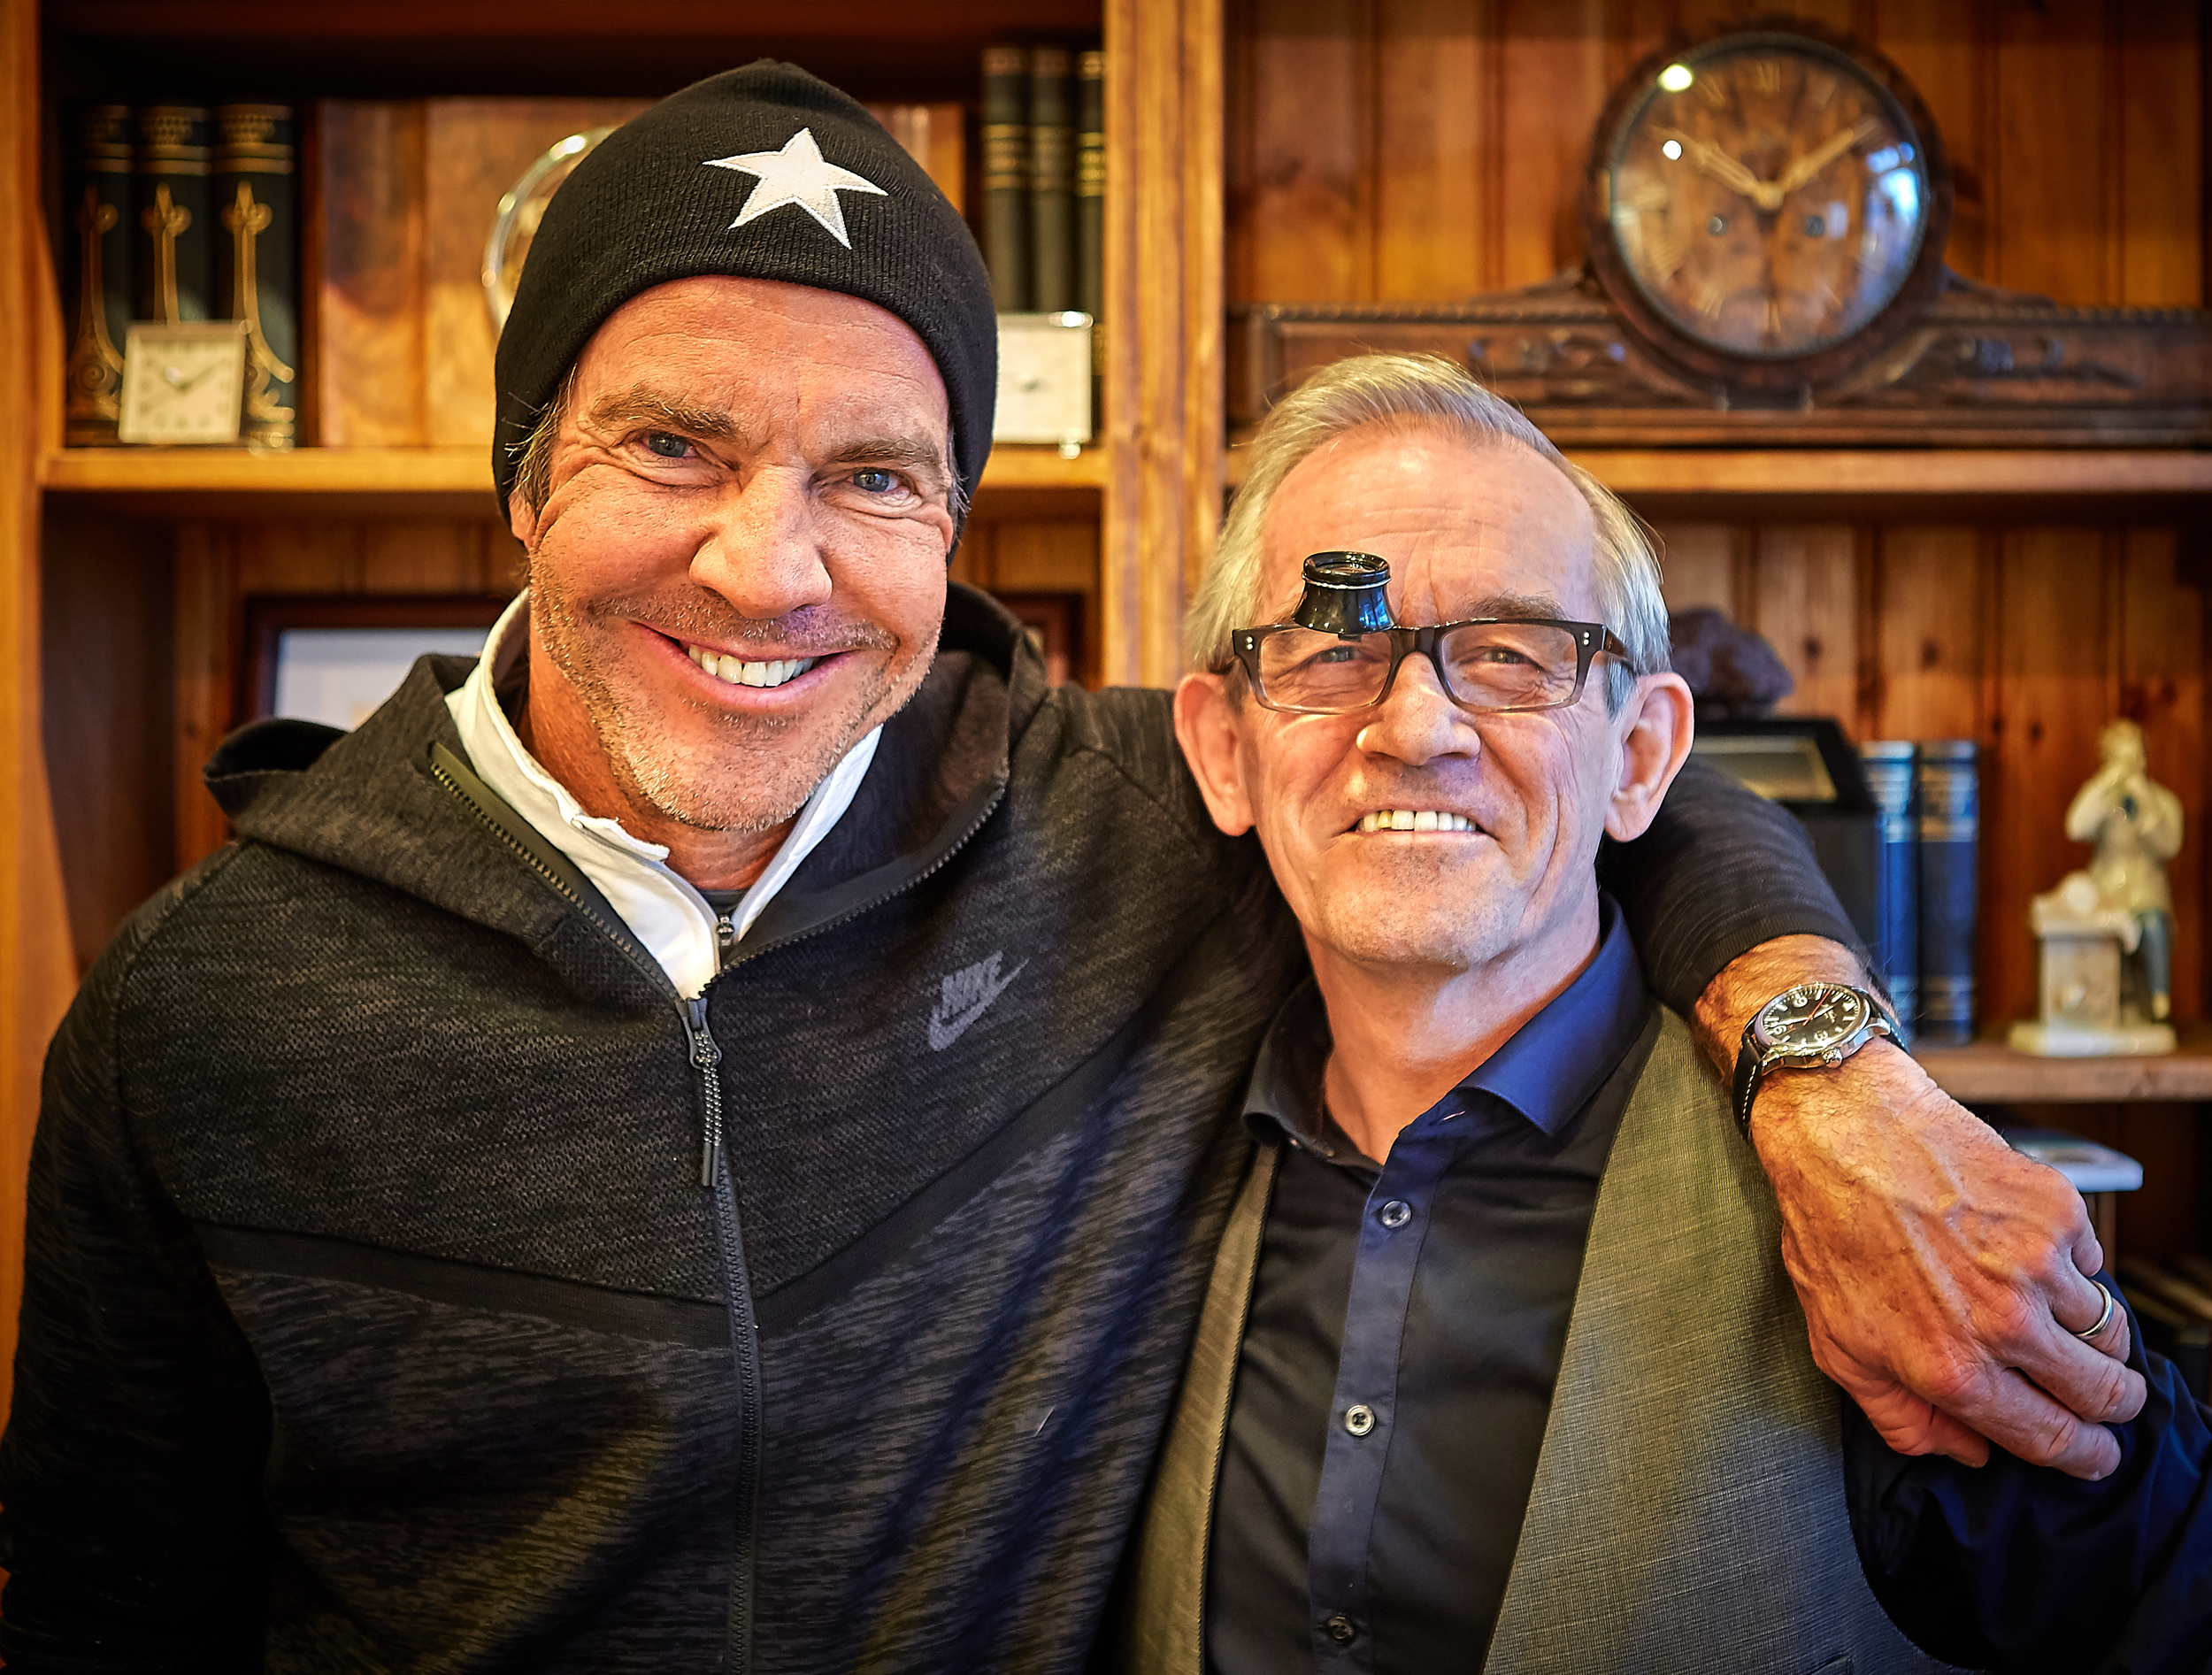 Dennis Quaid and Gilbert Watchmaker.